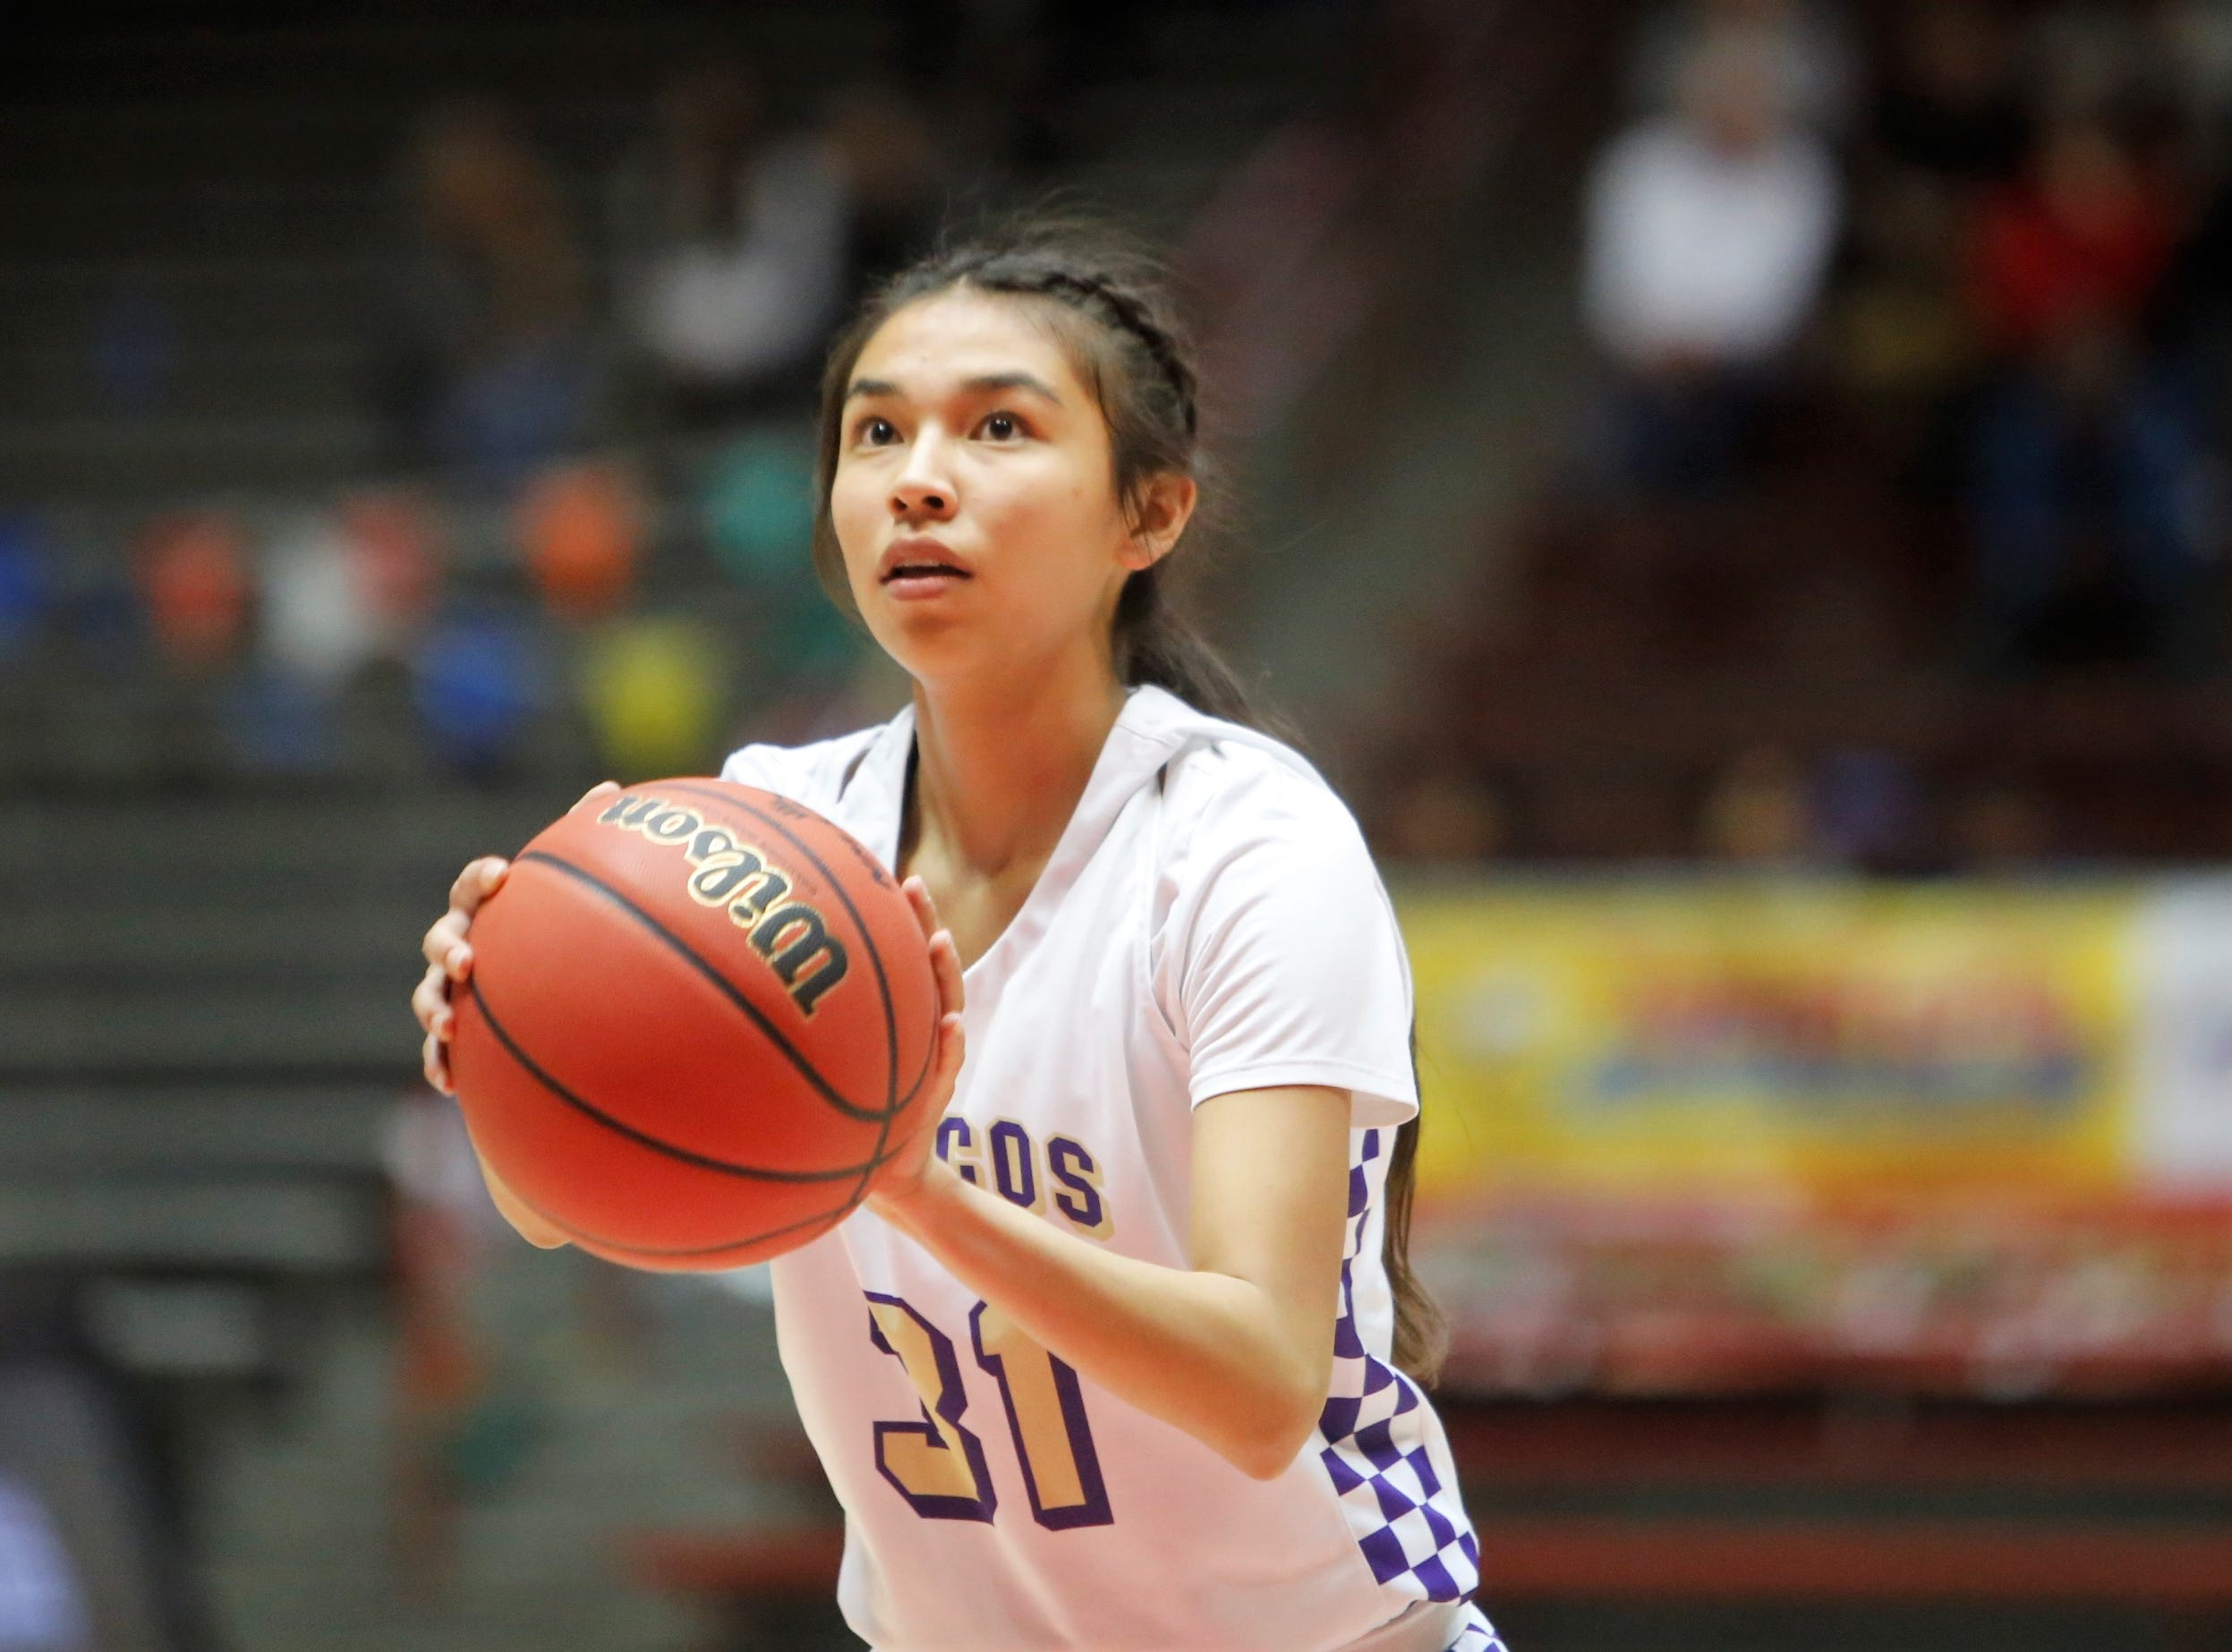 Kirtland Central's Tiajhae Nez shoots a free throw against Portales during Tuesday's 4A state quarterfinals game at Dreamstyle Arena in Albuquerque.